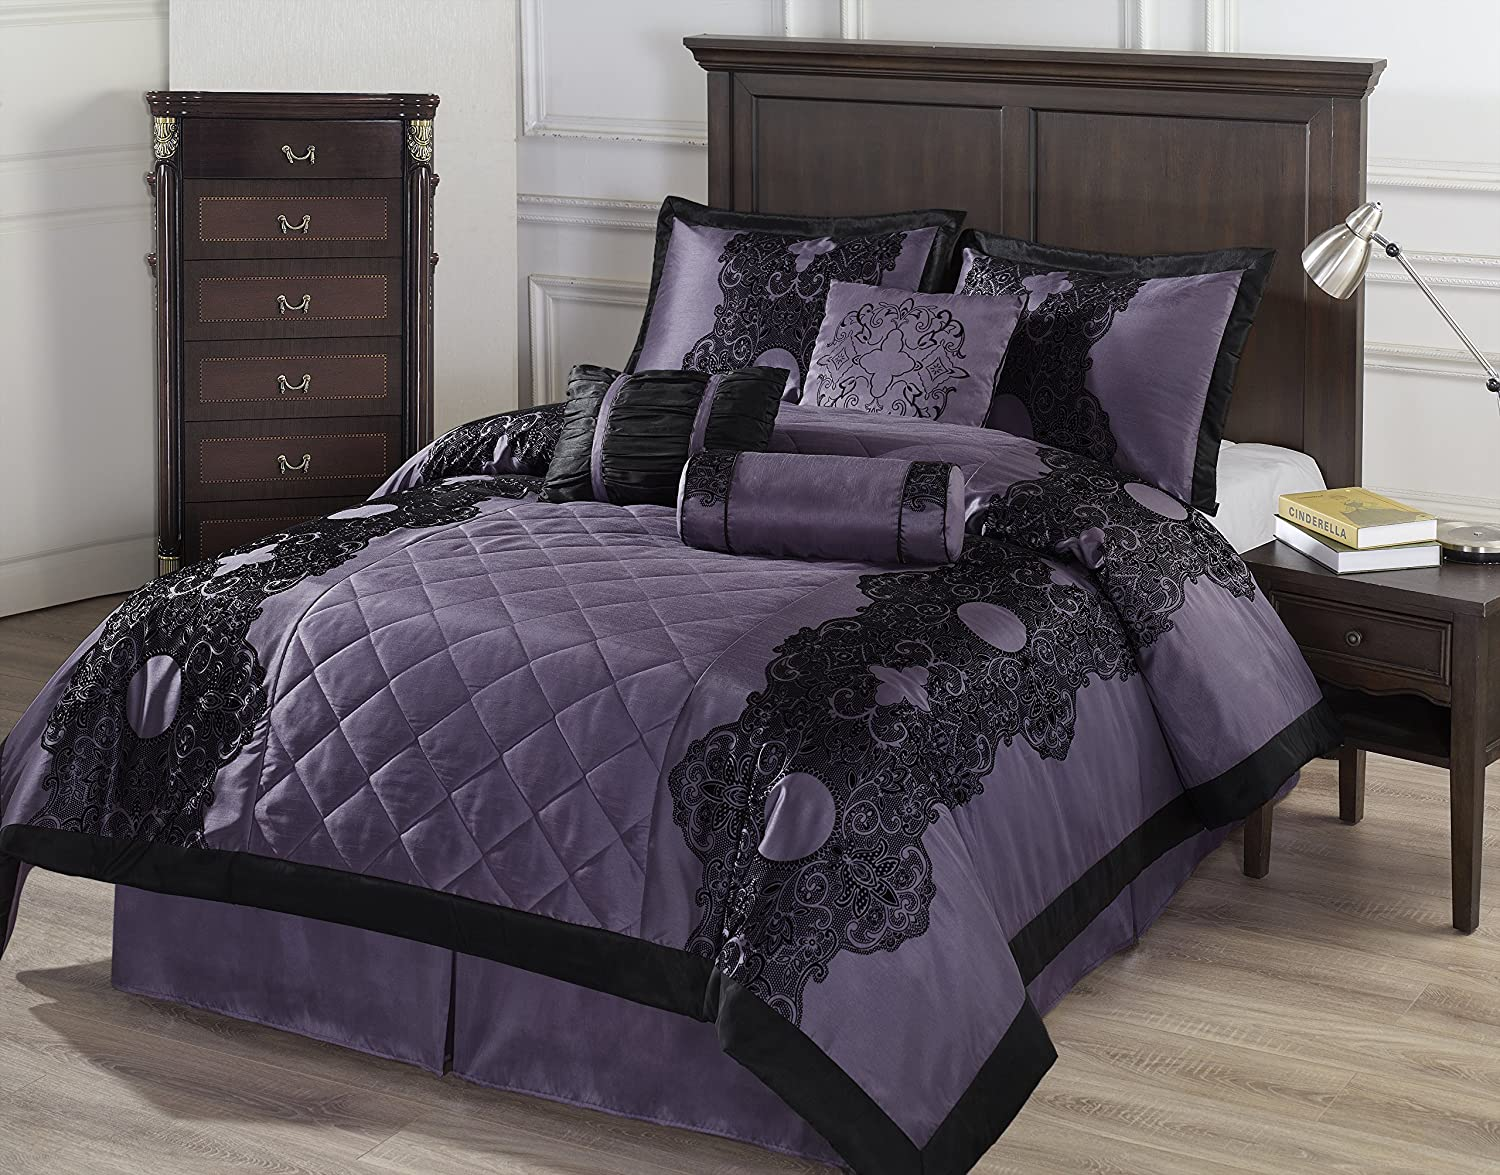 Black and purple bed sheets - Black And Purple Bedding Sets